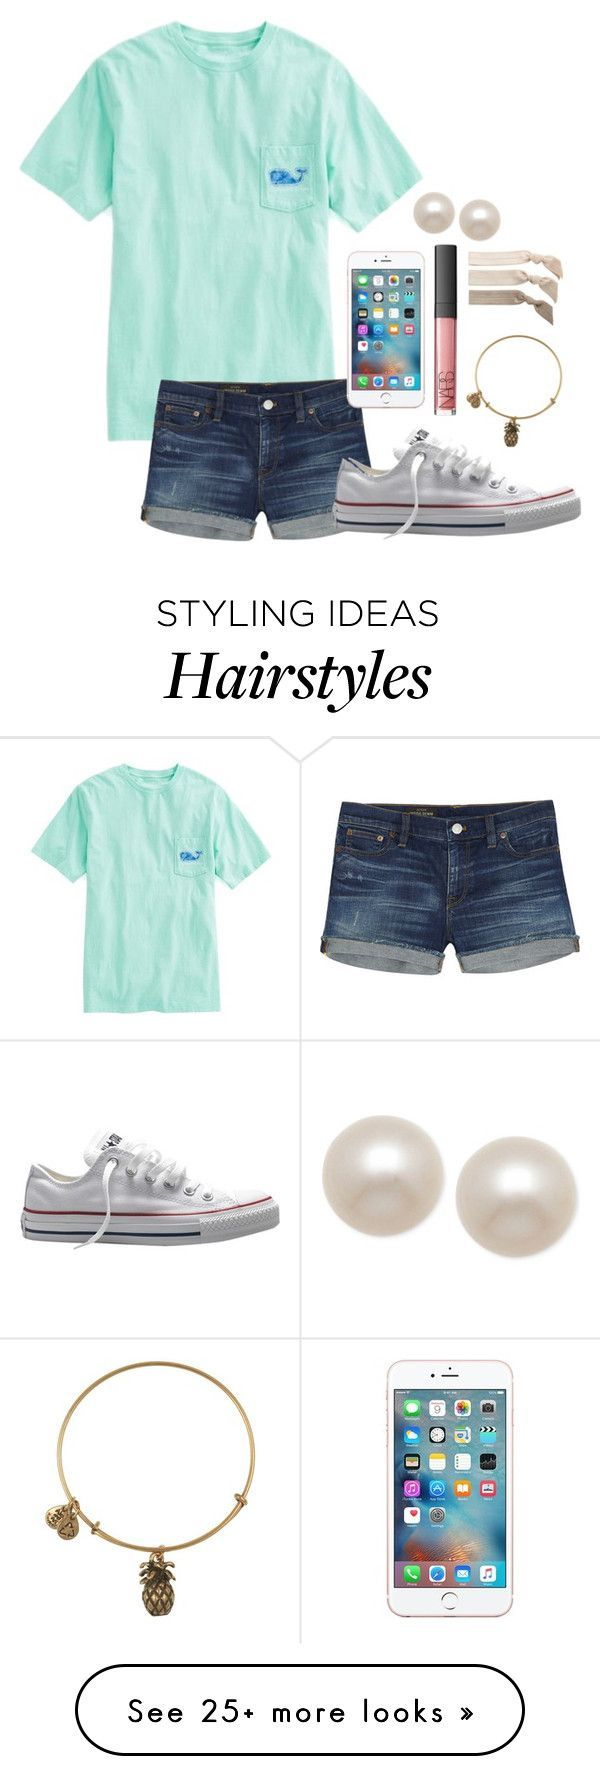 """""""Day 2-Last Day of School"""" by whalesandprints on Polyvore featuring Vineyard Vines, J.Crew, Converse, Alex and Ani, NARS Cosmetics, Honora, Emi-Jay and funinthesunwithmollyandellie Women, Men and Kids Outfit Ideas on our website at 7ootd.com"""